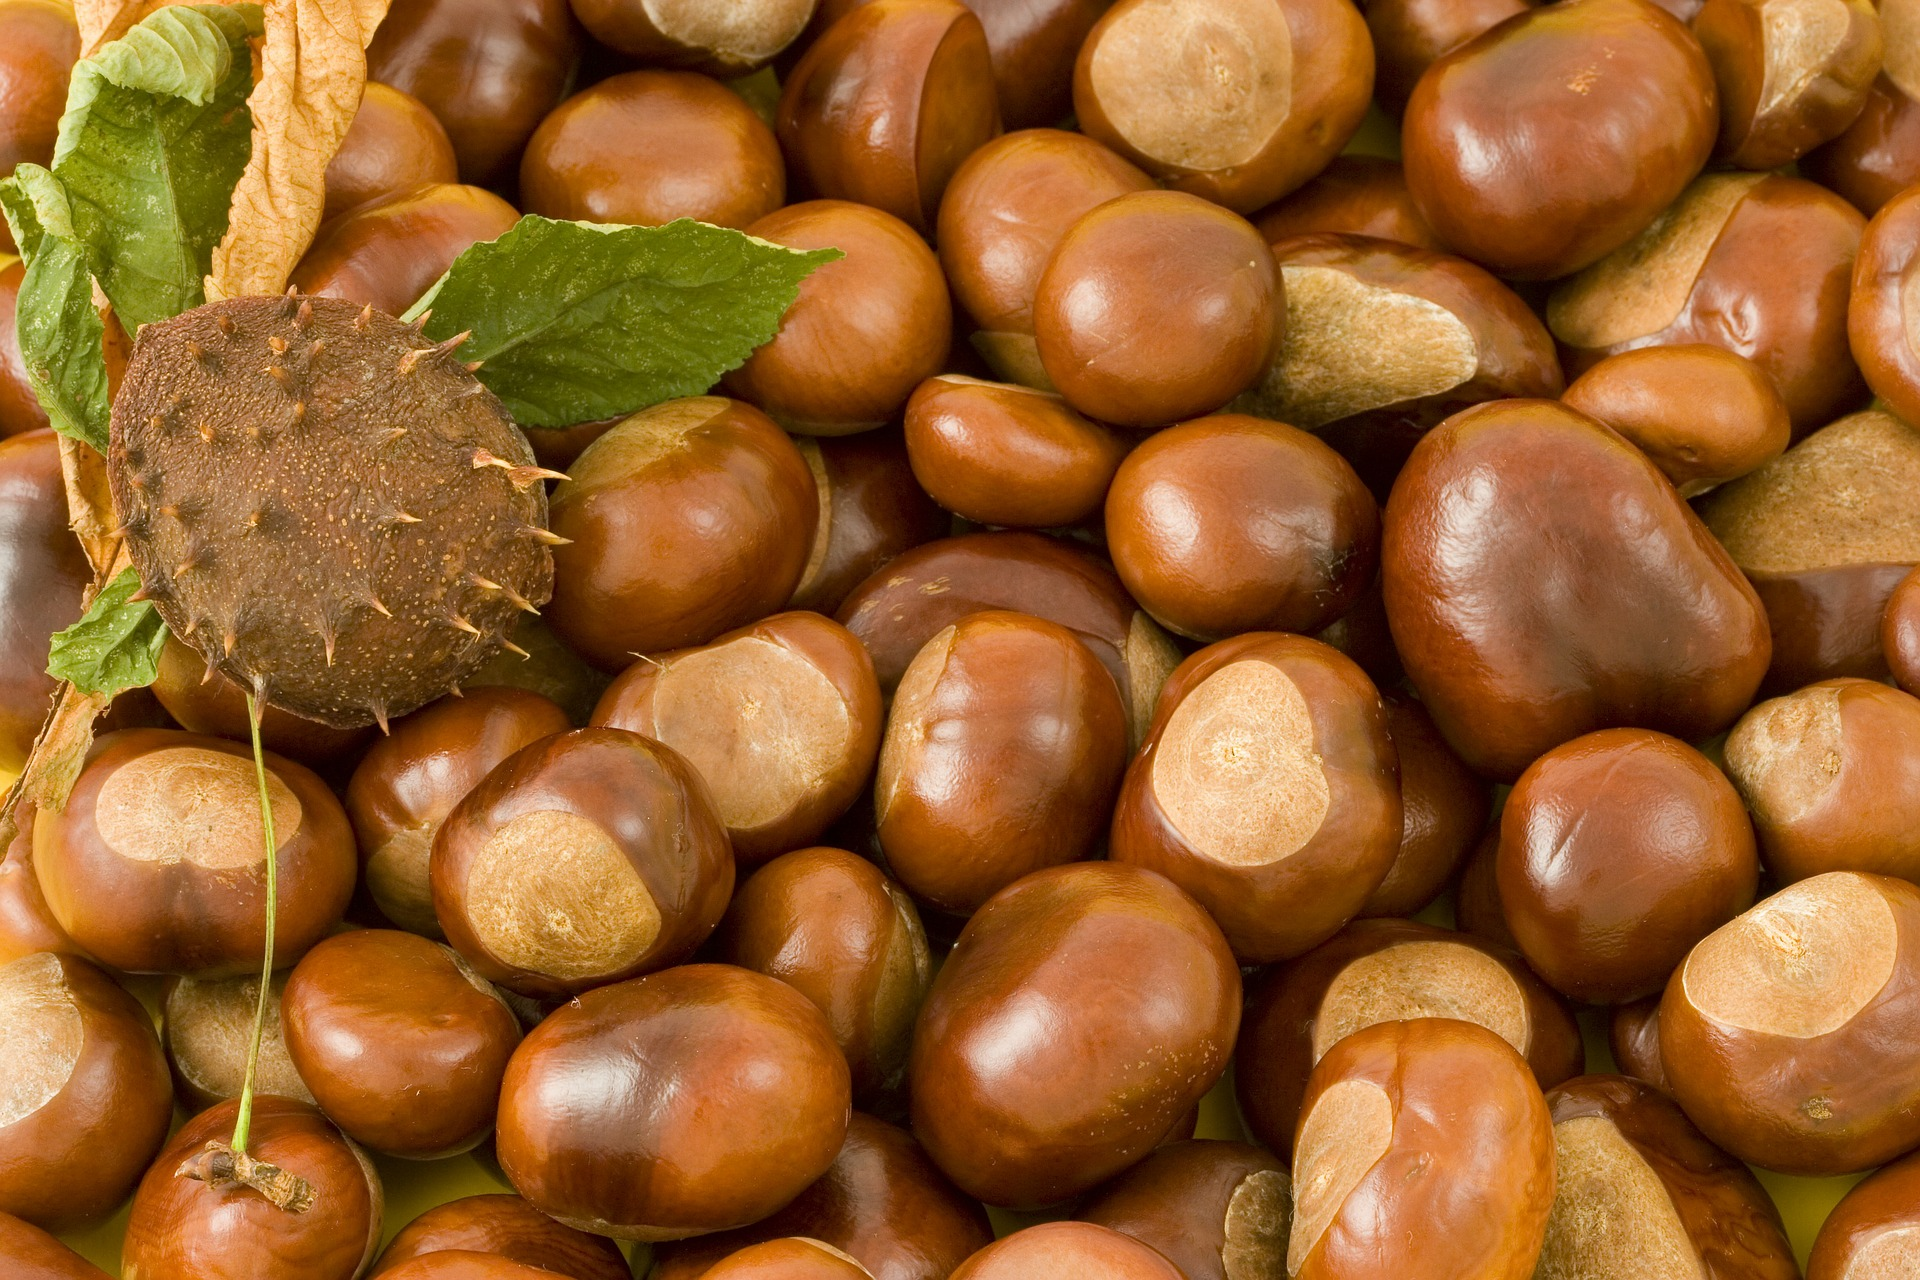 Conkers - a popular and controversial playground activity - Skipping Is Most Fondly-Remembered School Game, Study Reveals